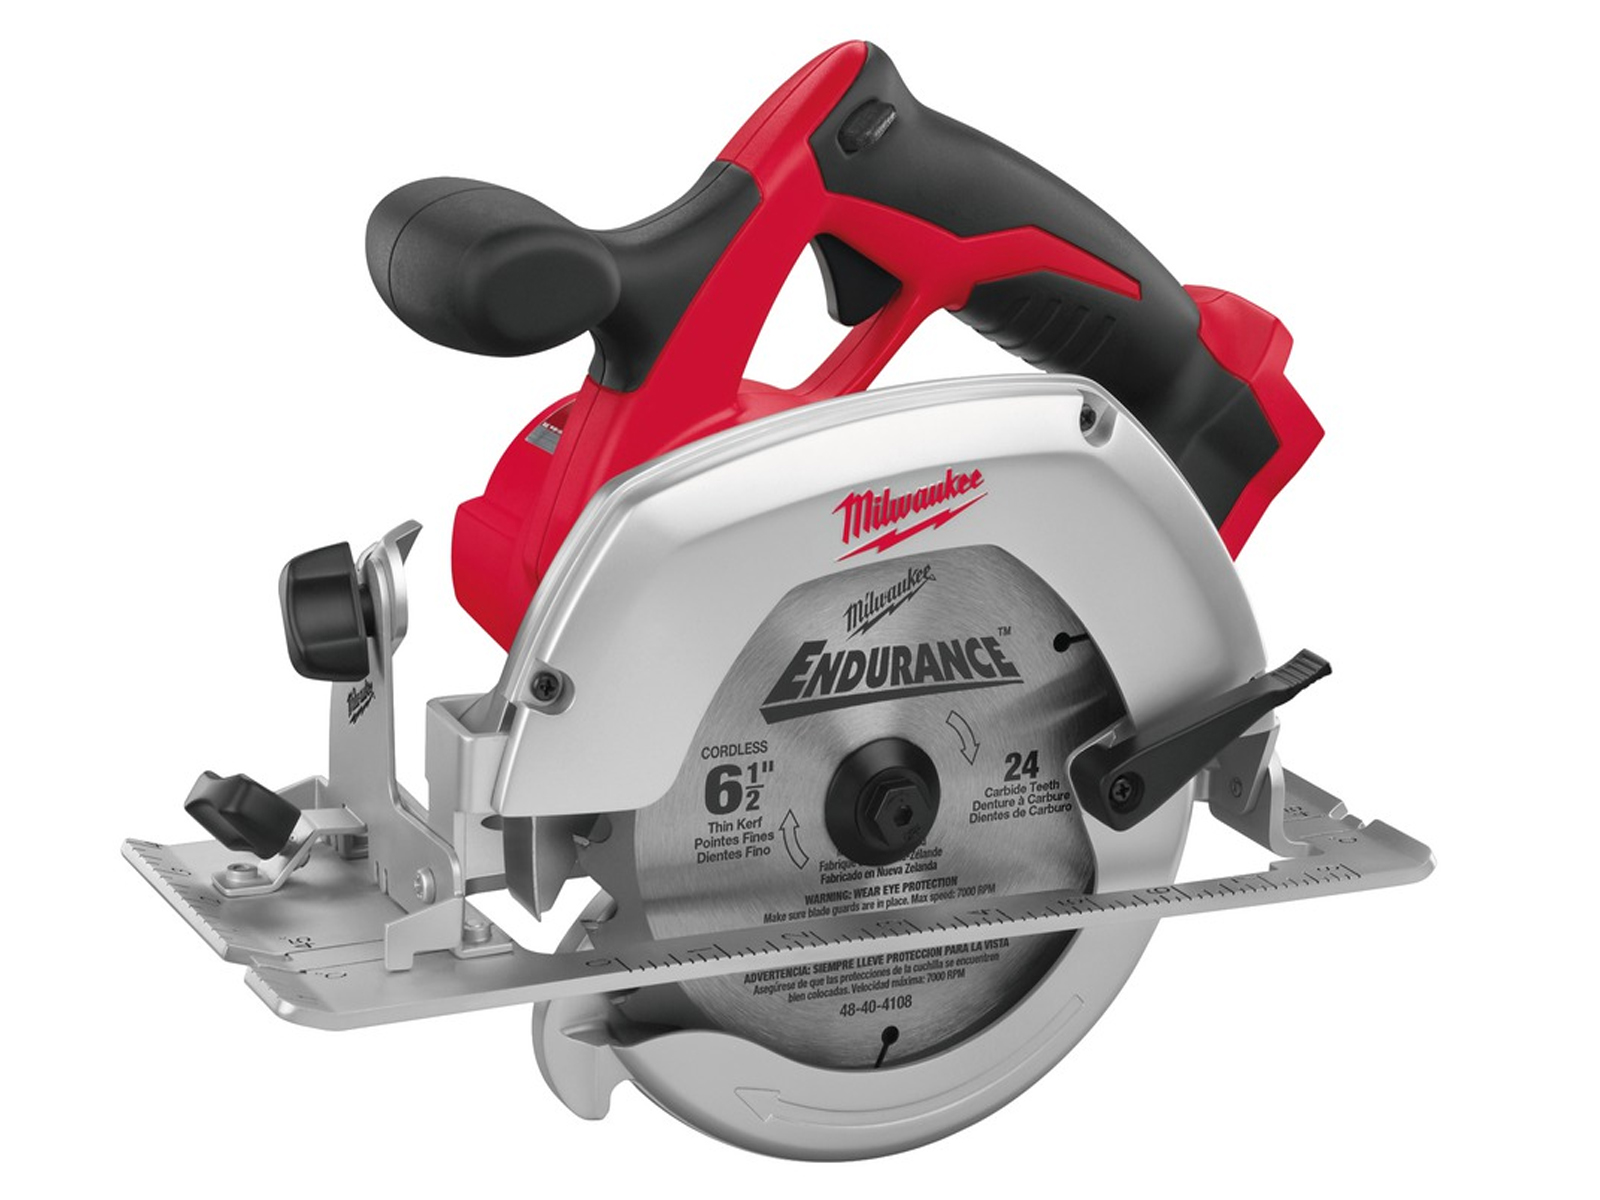 Milwaukee HD18CS 18V Heavy Duty 165mm (55mm) Circular Saw for Wood and Plastic - Body Only